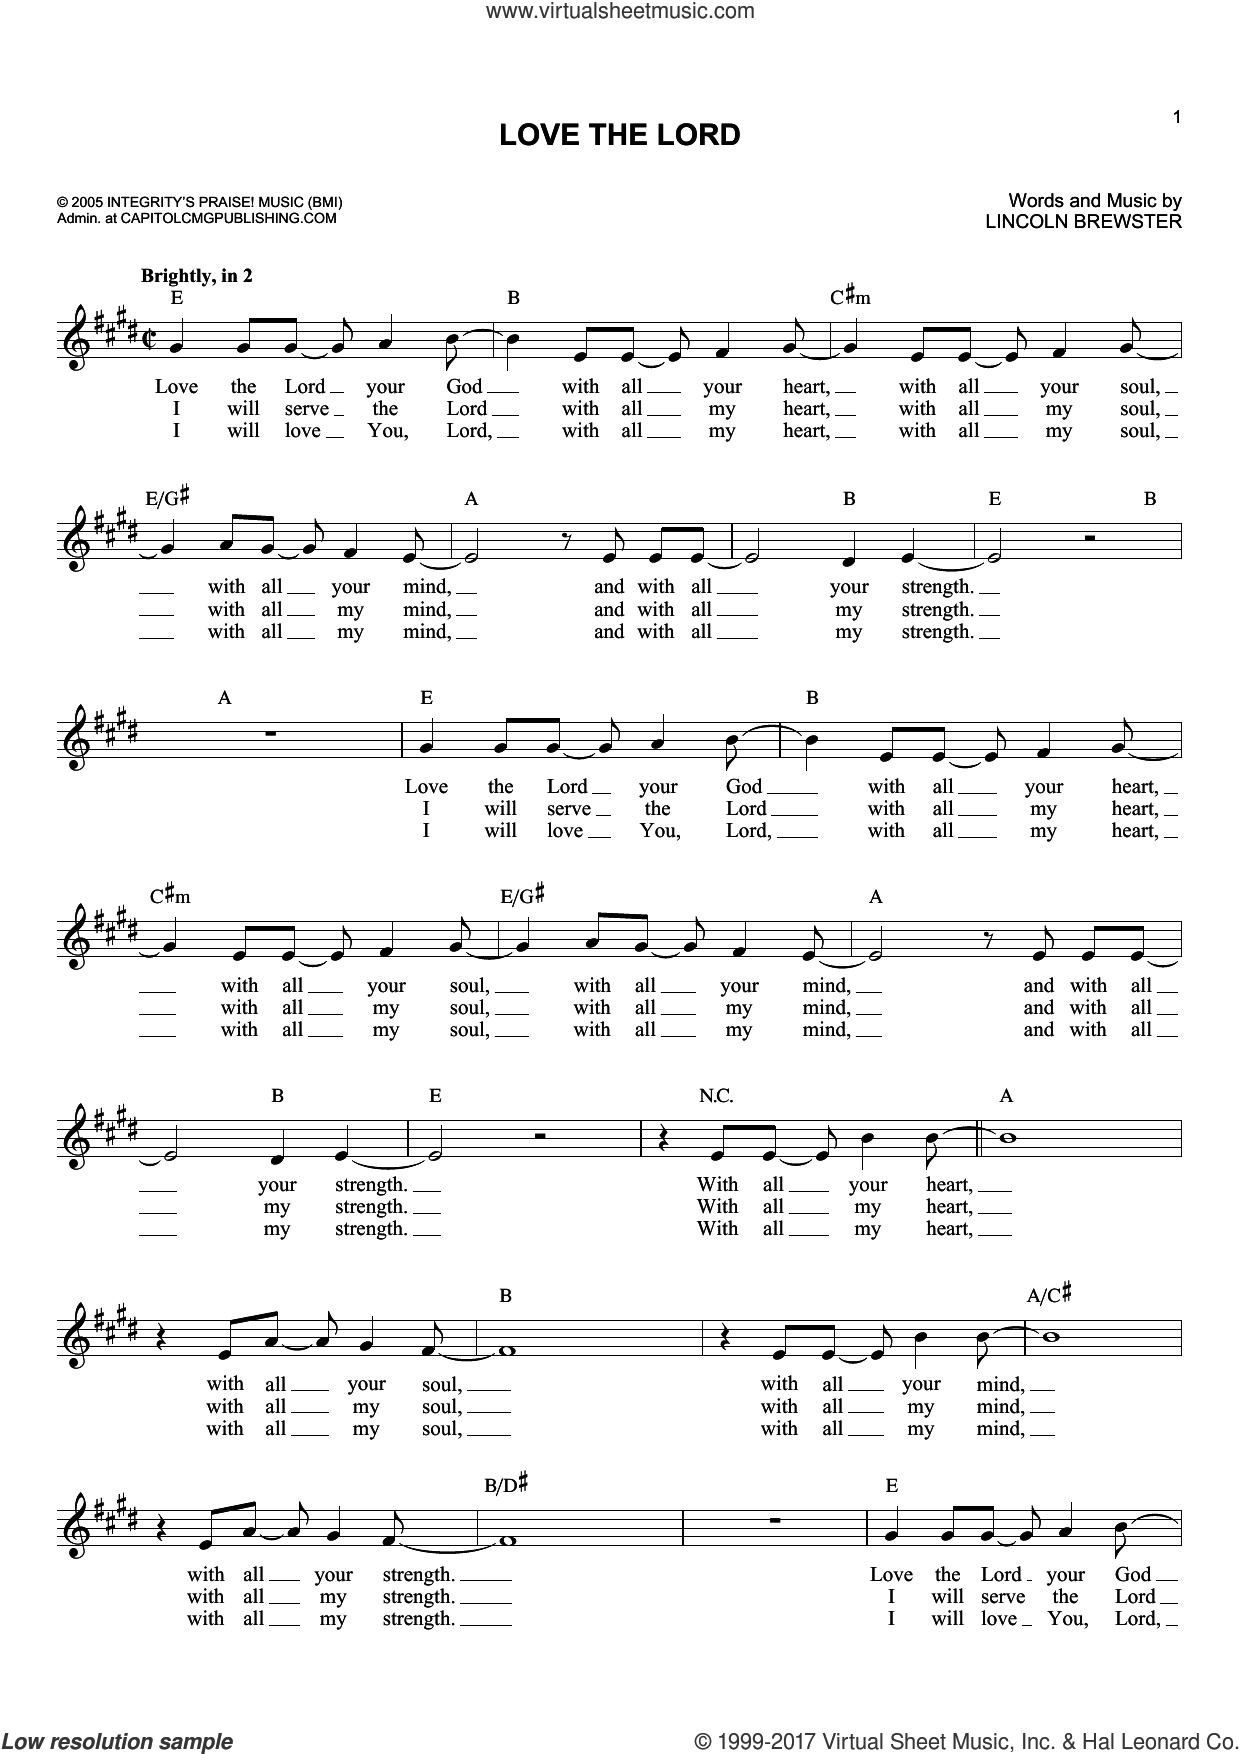 Love The Lord sheet music for voice and other instruments (fake book) by Lincoln Brewster. Score Image Preview.